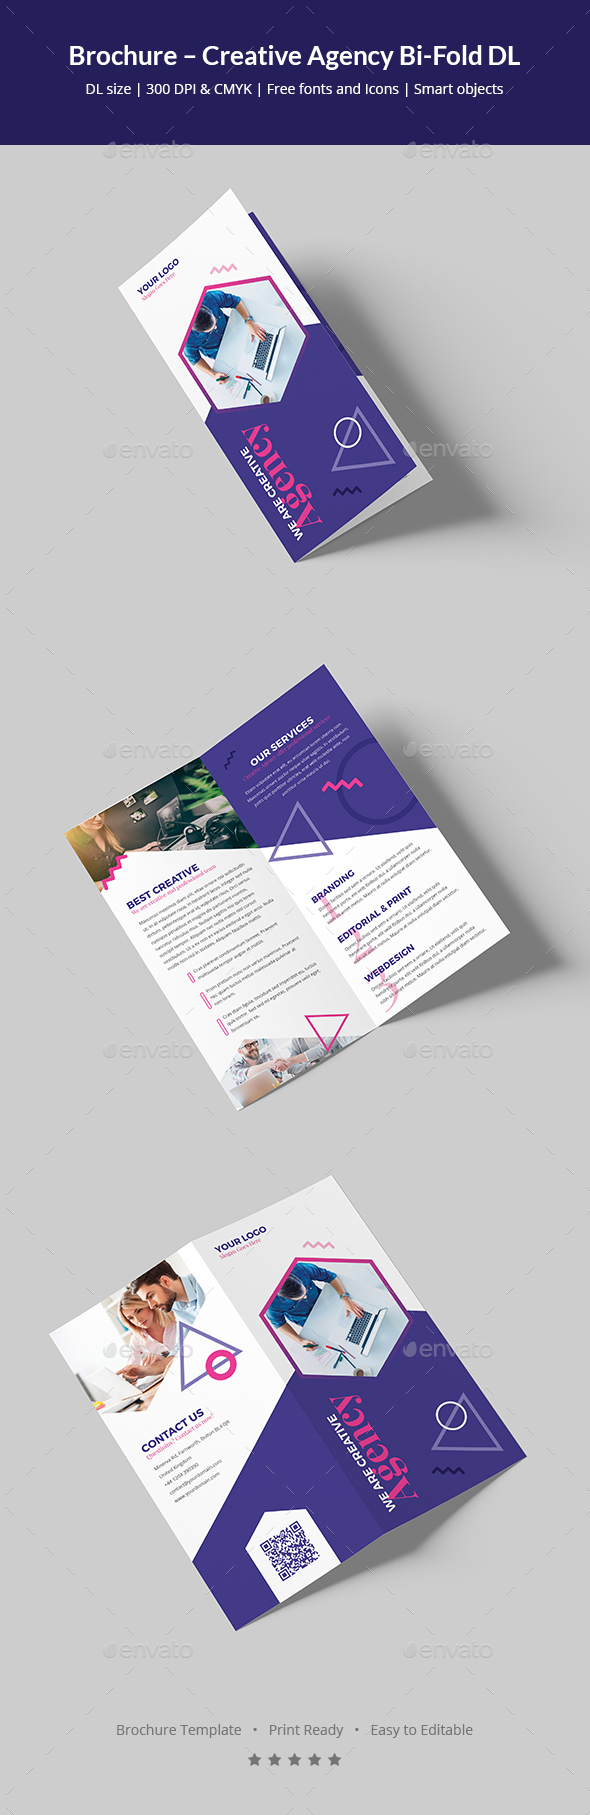 Brochure – Creative Agency Bi-Fold DL